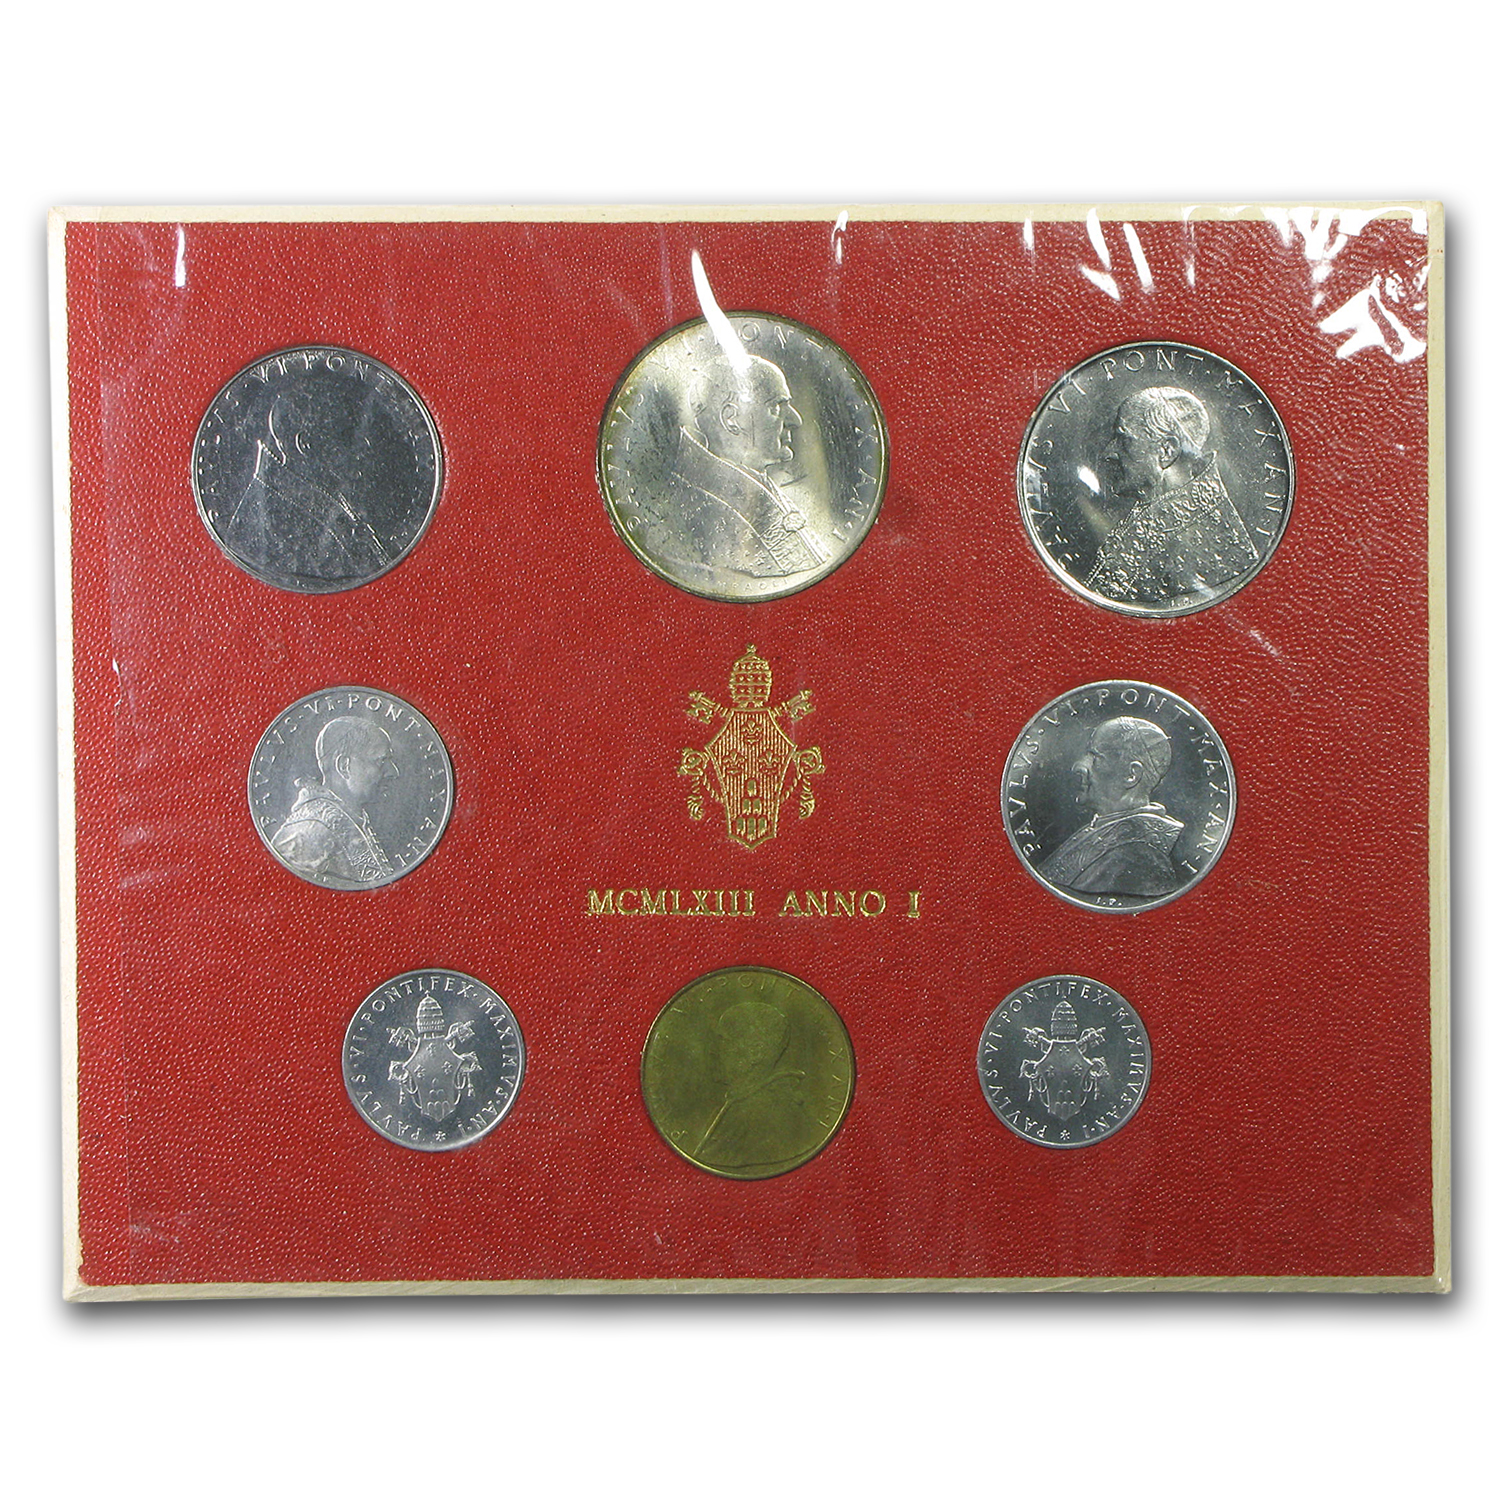 1963 Vatican City 1-500 Lire Mint Set Paul VI BU